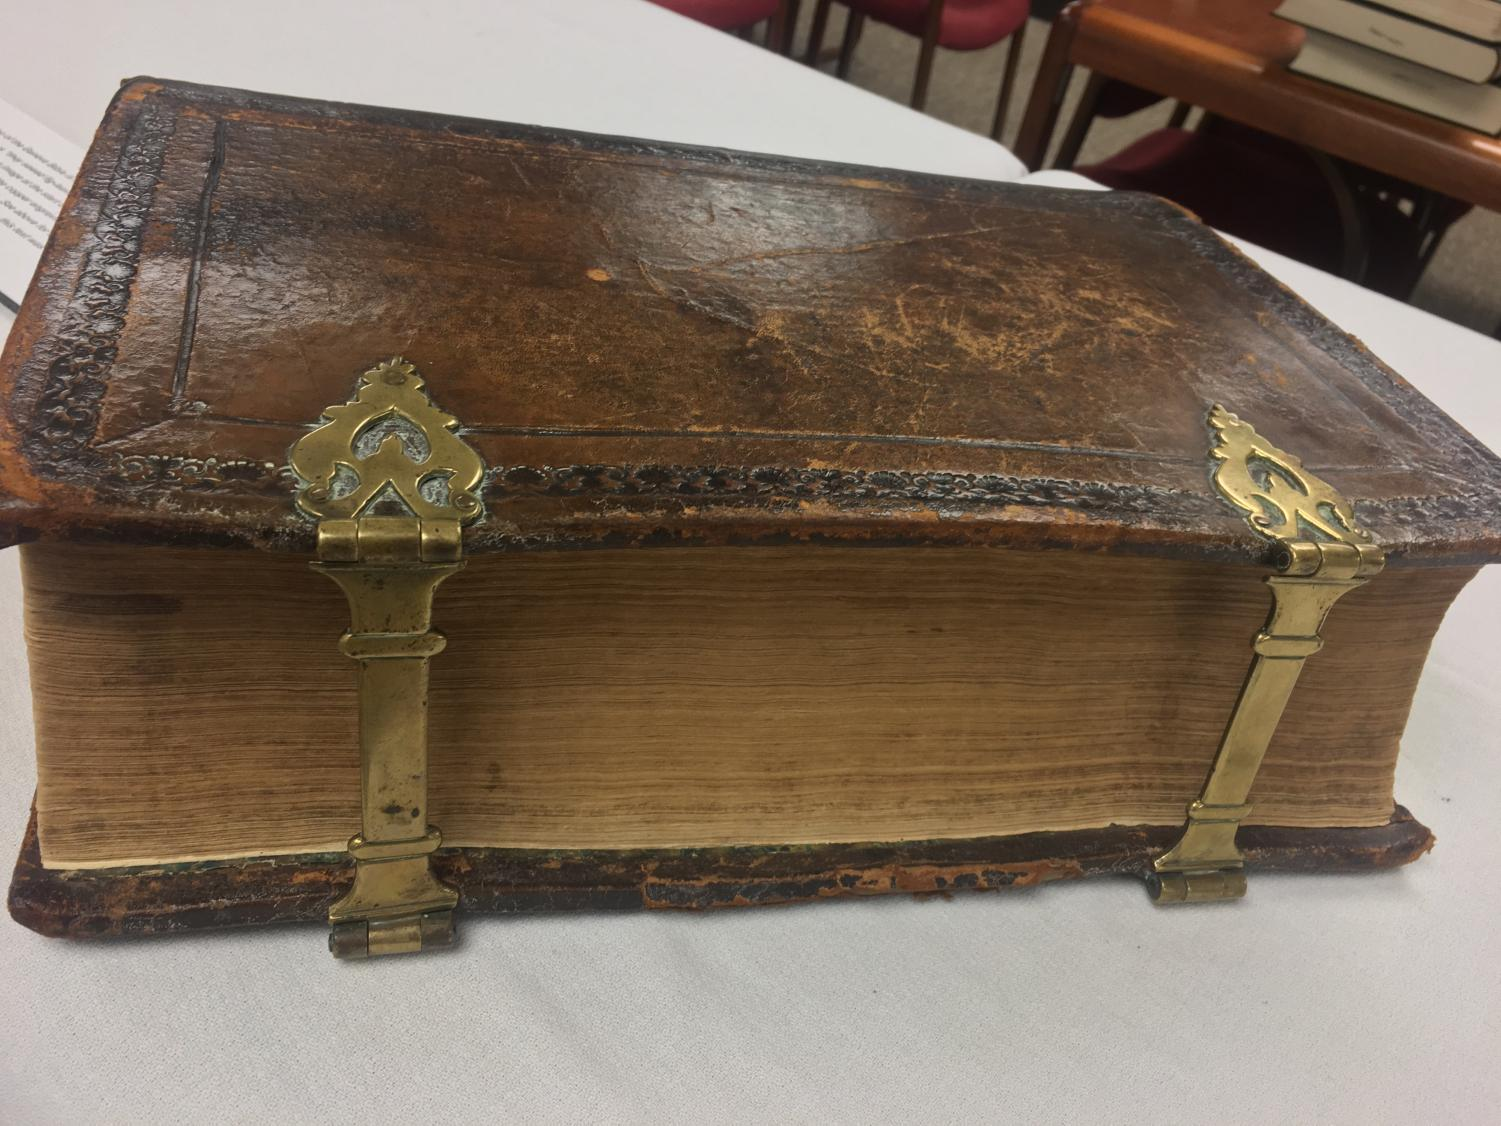 Hekman Library currently has various antique Bibles on display.